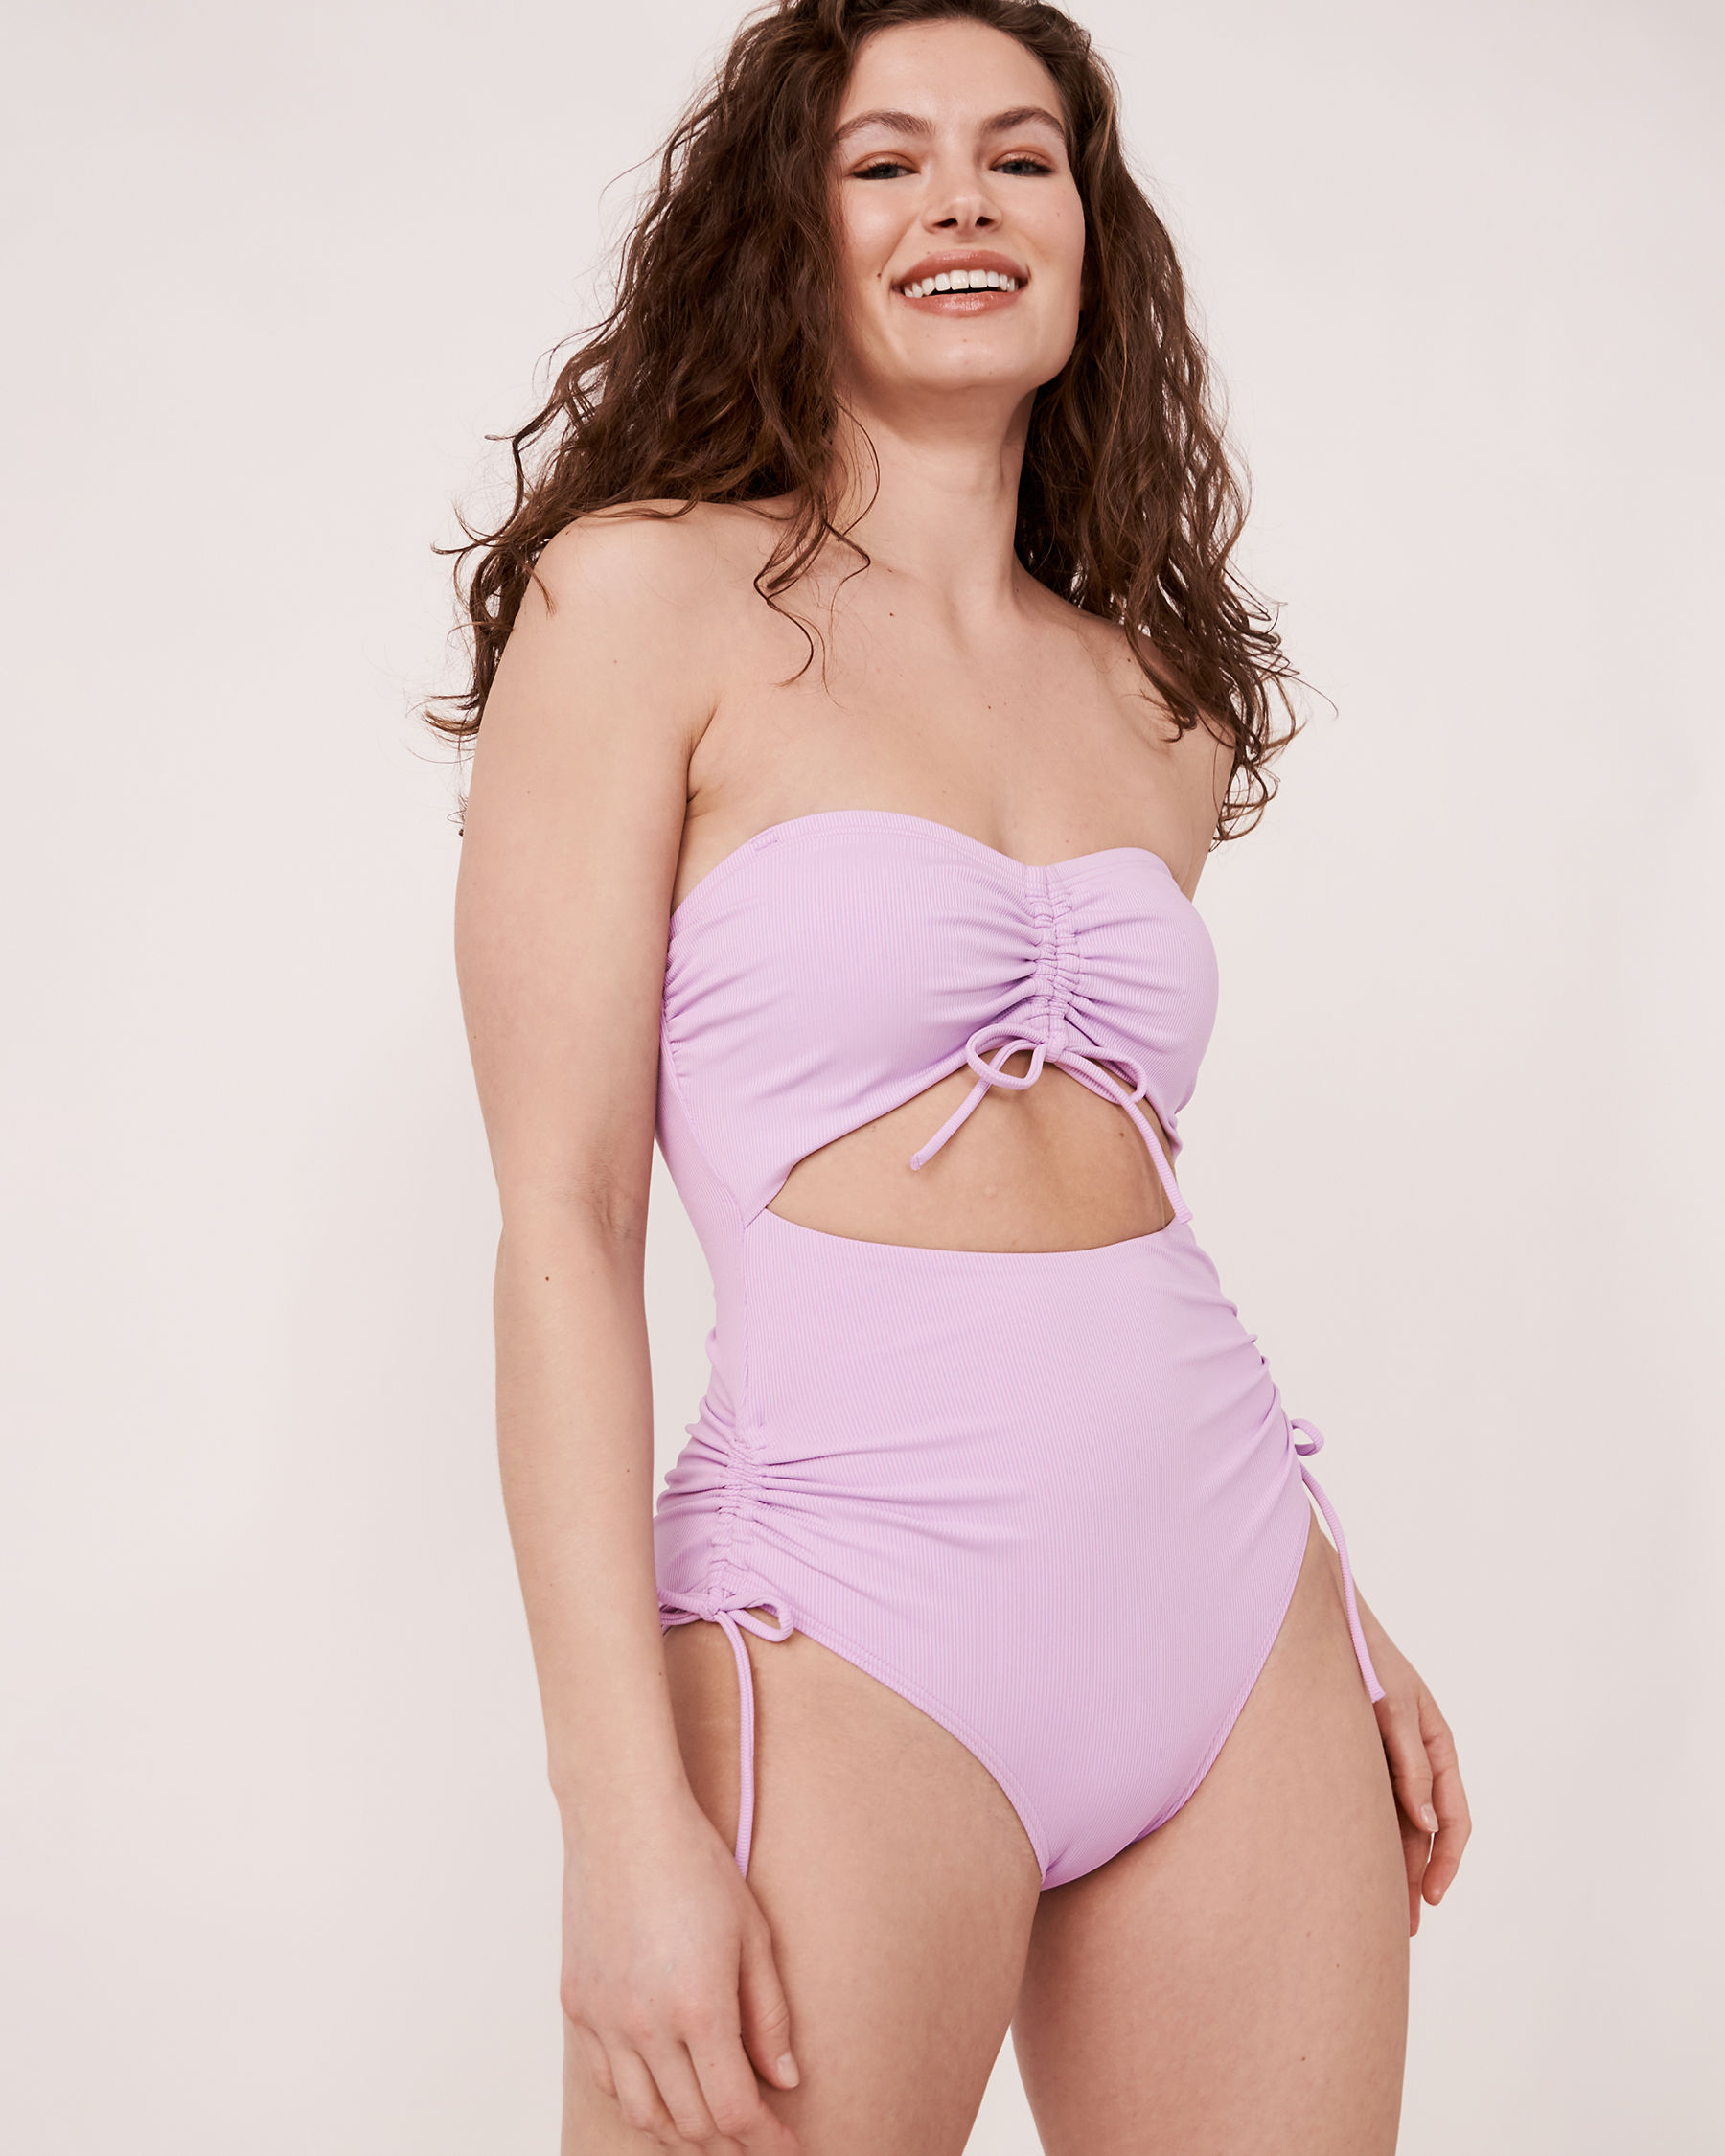 AQUAROSE SOLID RIB Recycled Fibers Bandeau One-piece Swimsuit Lilac 70400007 - View1